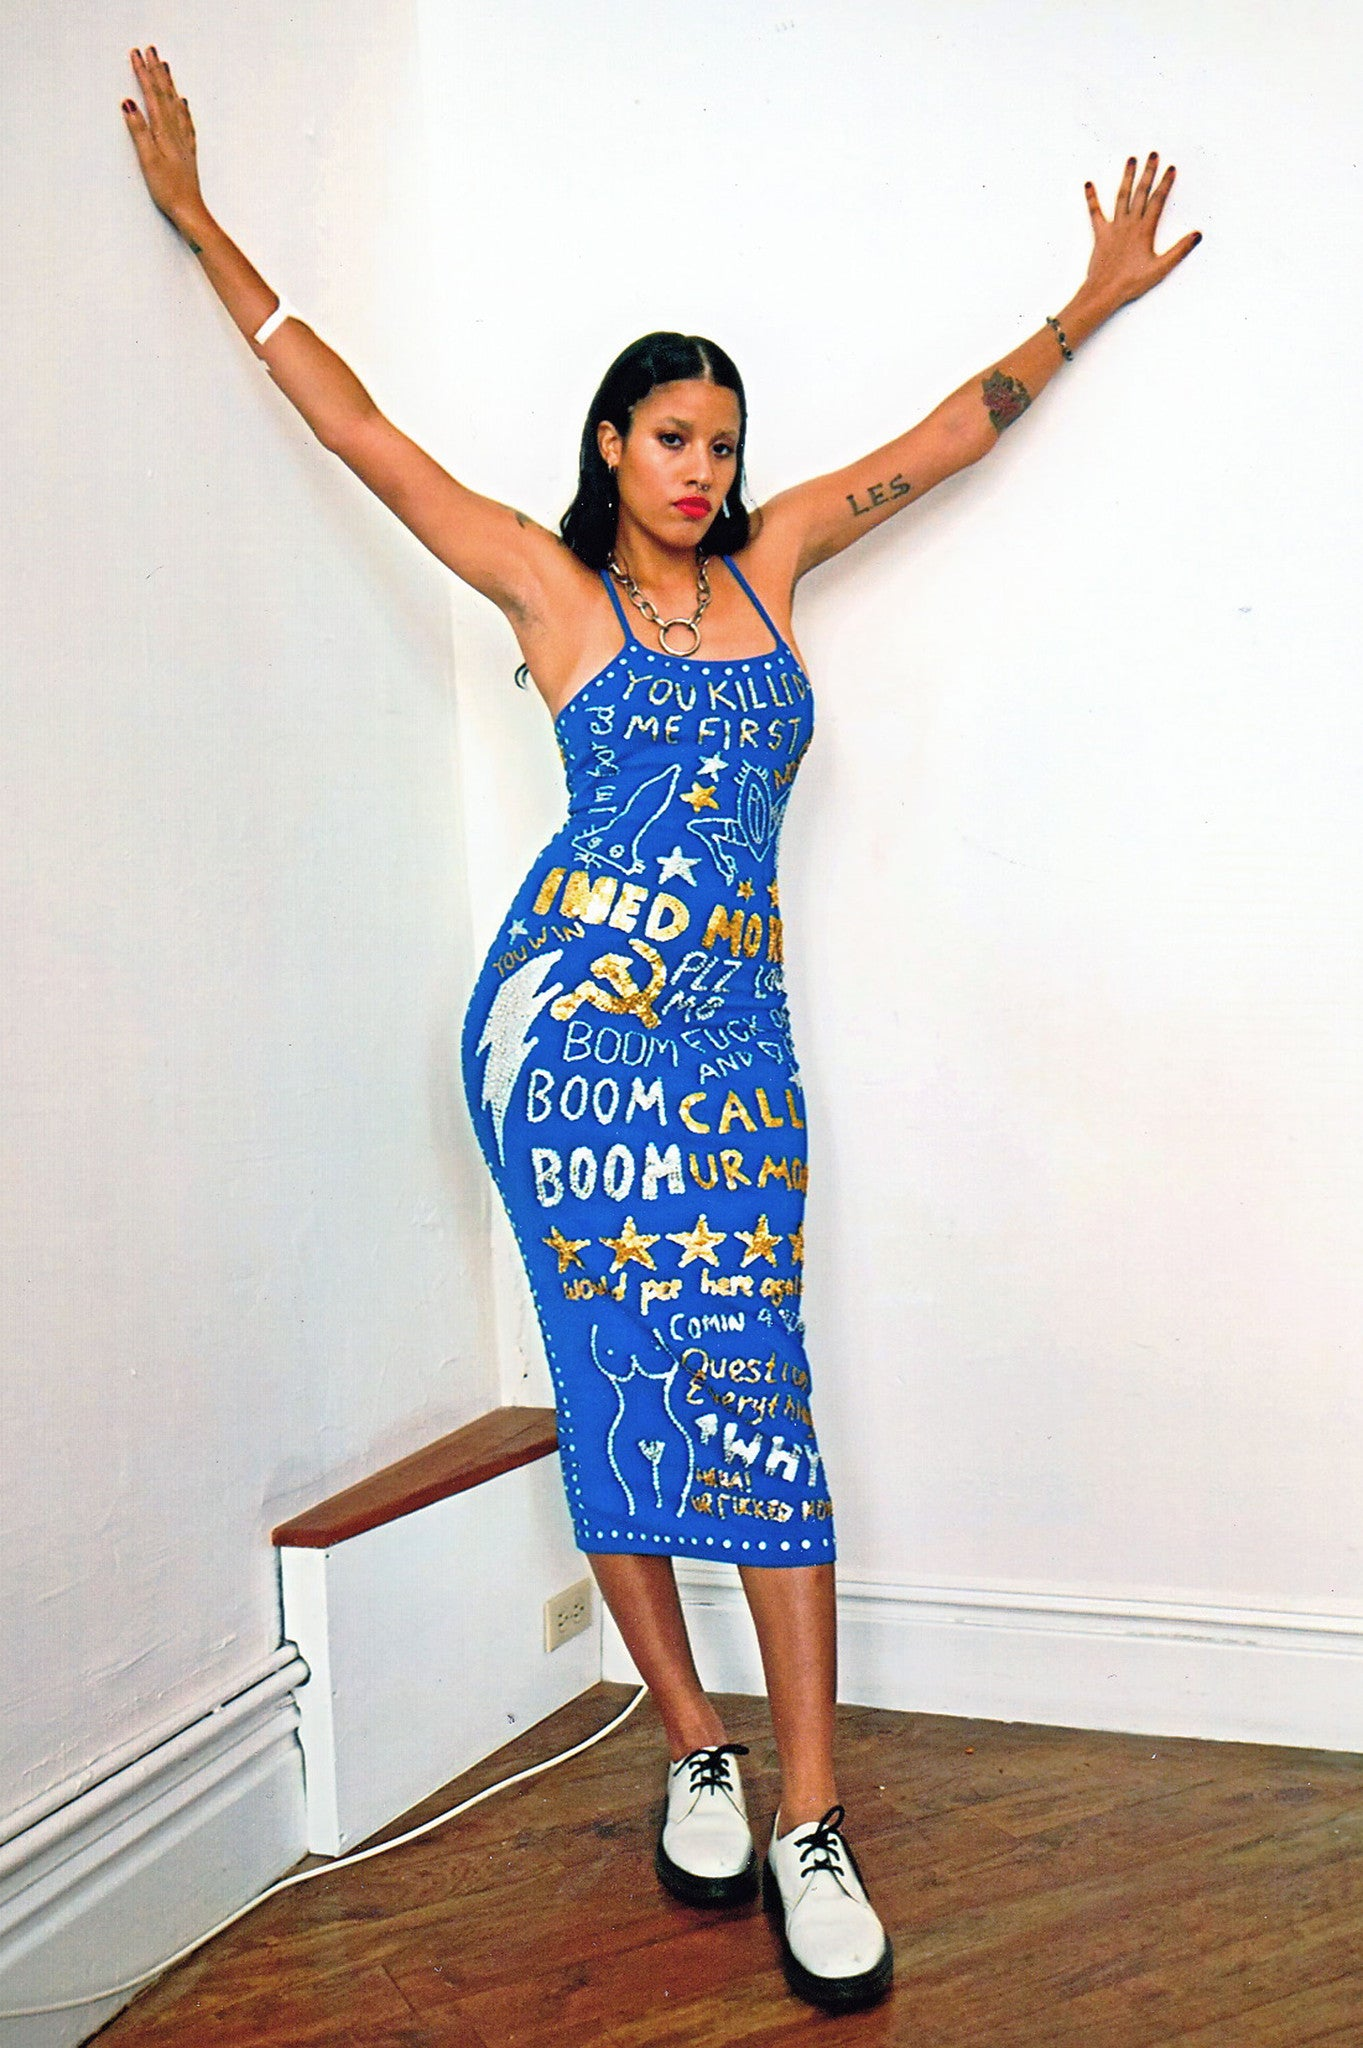 graffiti, graffiti lace up dress, blue toilet graffiti, sequinned graffiti, sequins, silver, gold, blue, lace up dress, lace up, blue, discount universe, di$count universe